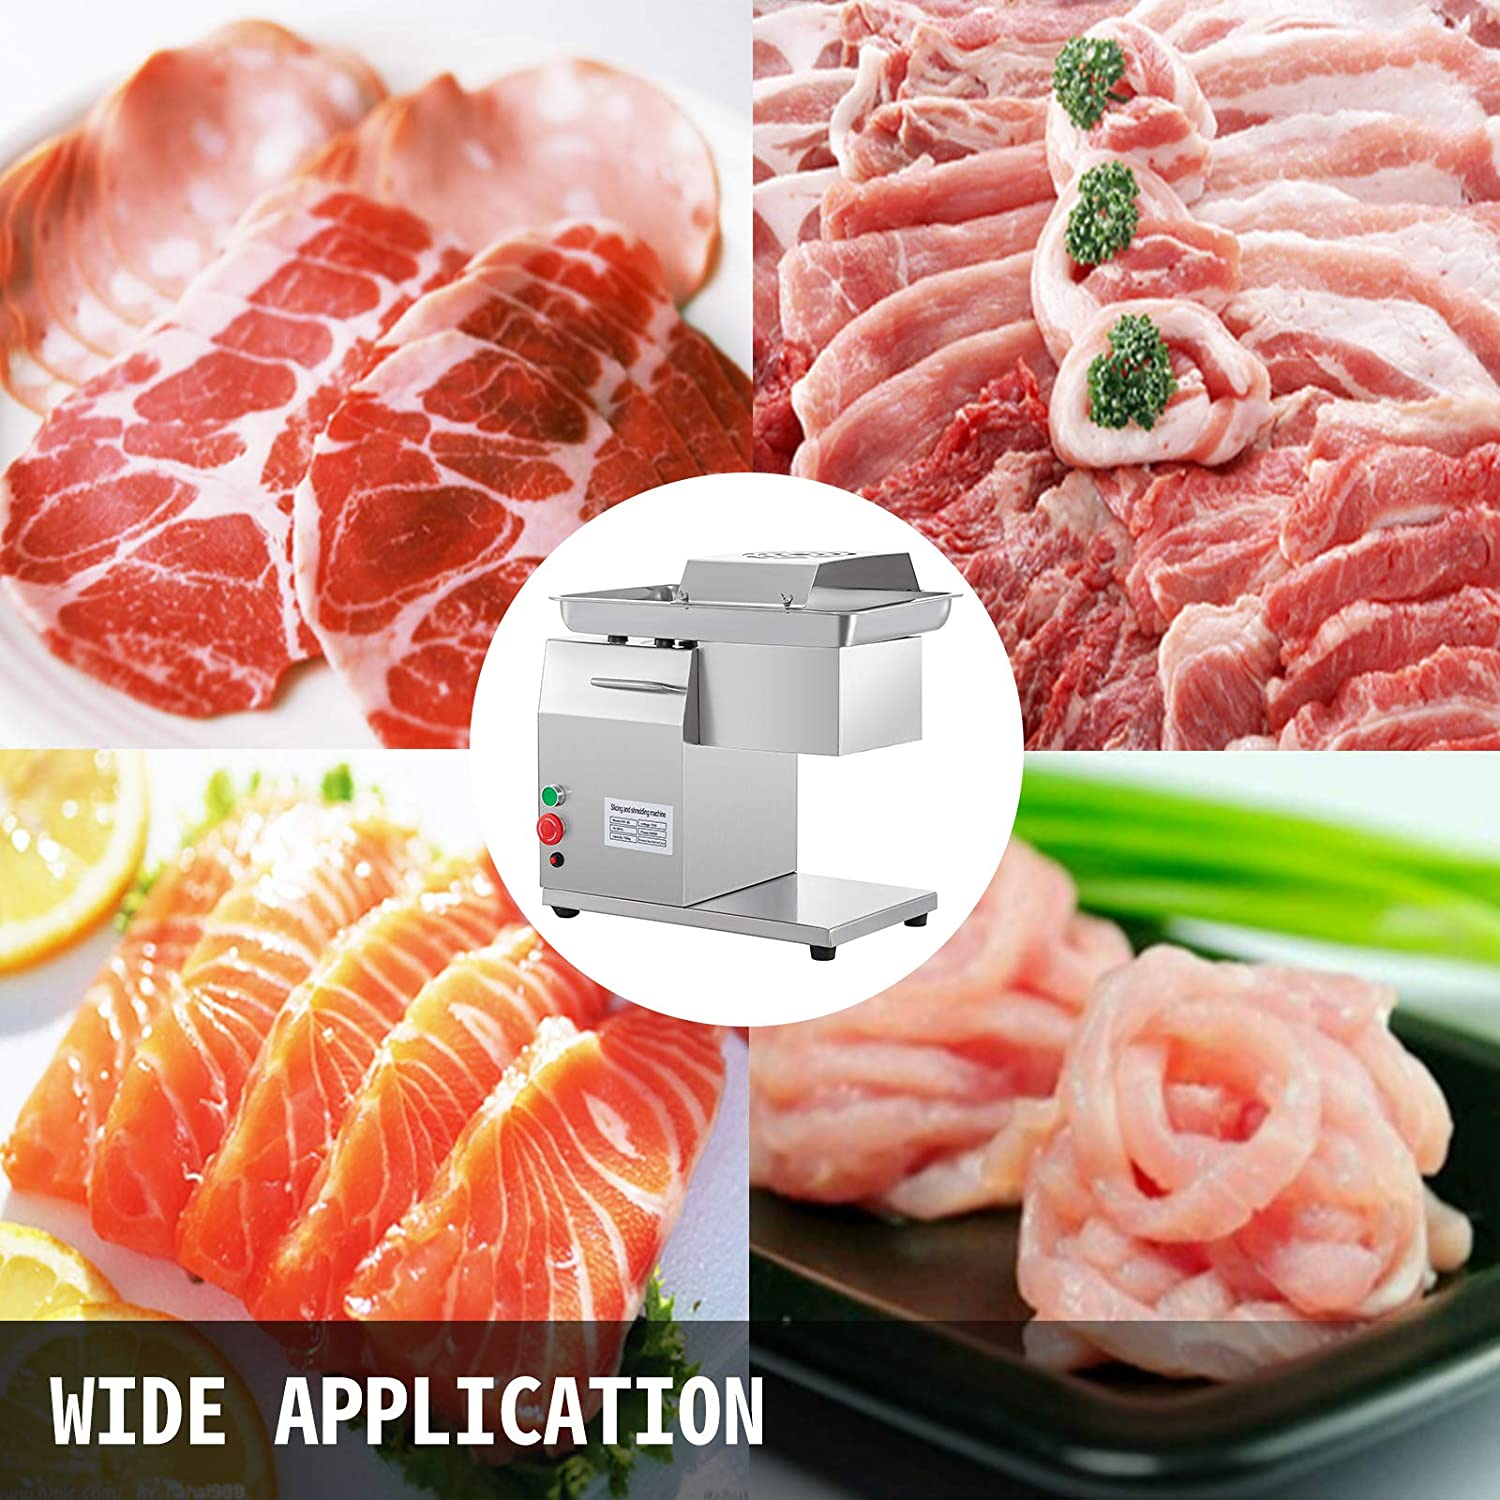 BestEquip One Set Blade 7mm for Desktop Meat Slicer 1100 LB//H 500W Stainless Steel Meat Cutting Machine 7mm Blade Perfect for Kitchen Restaurant